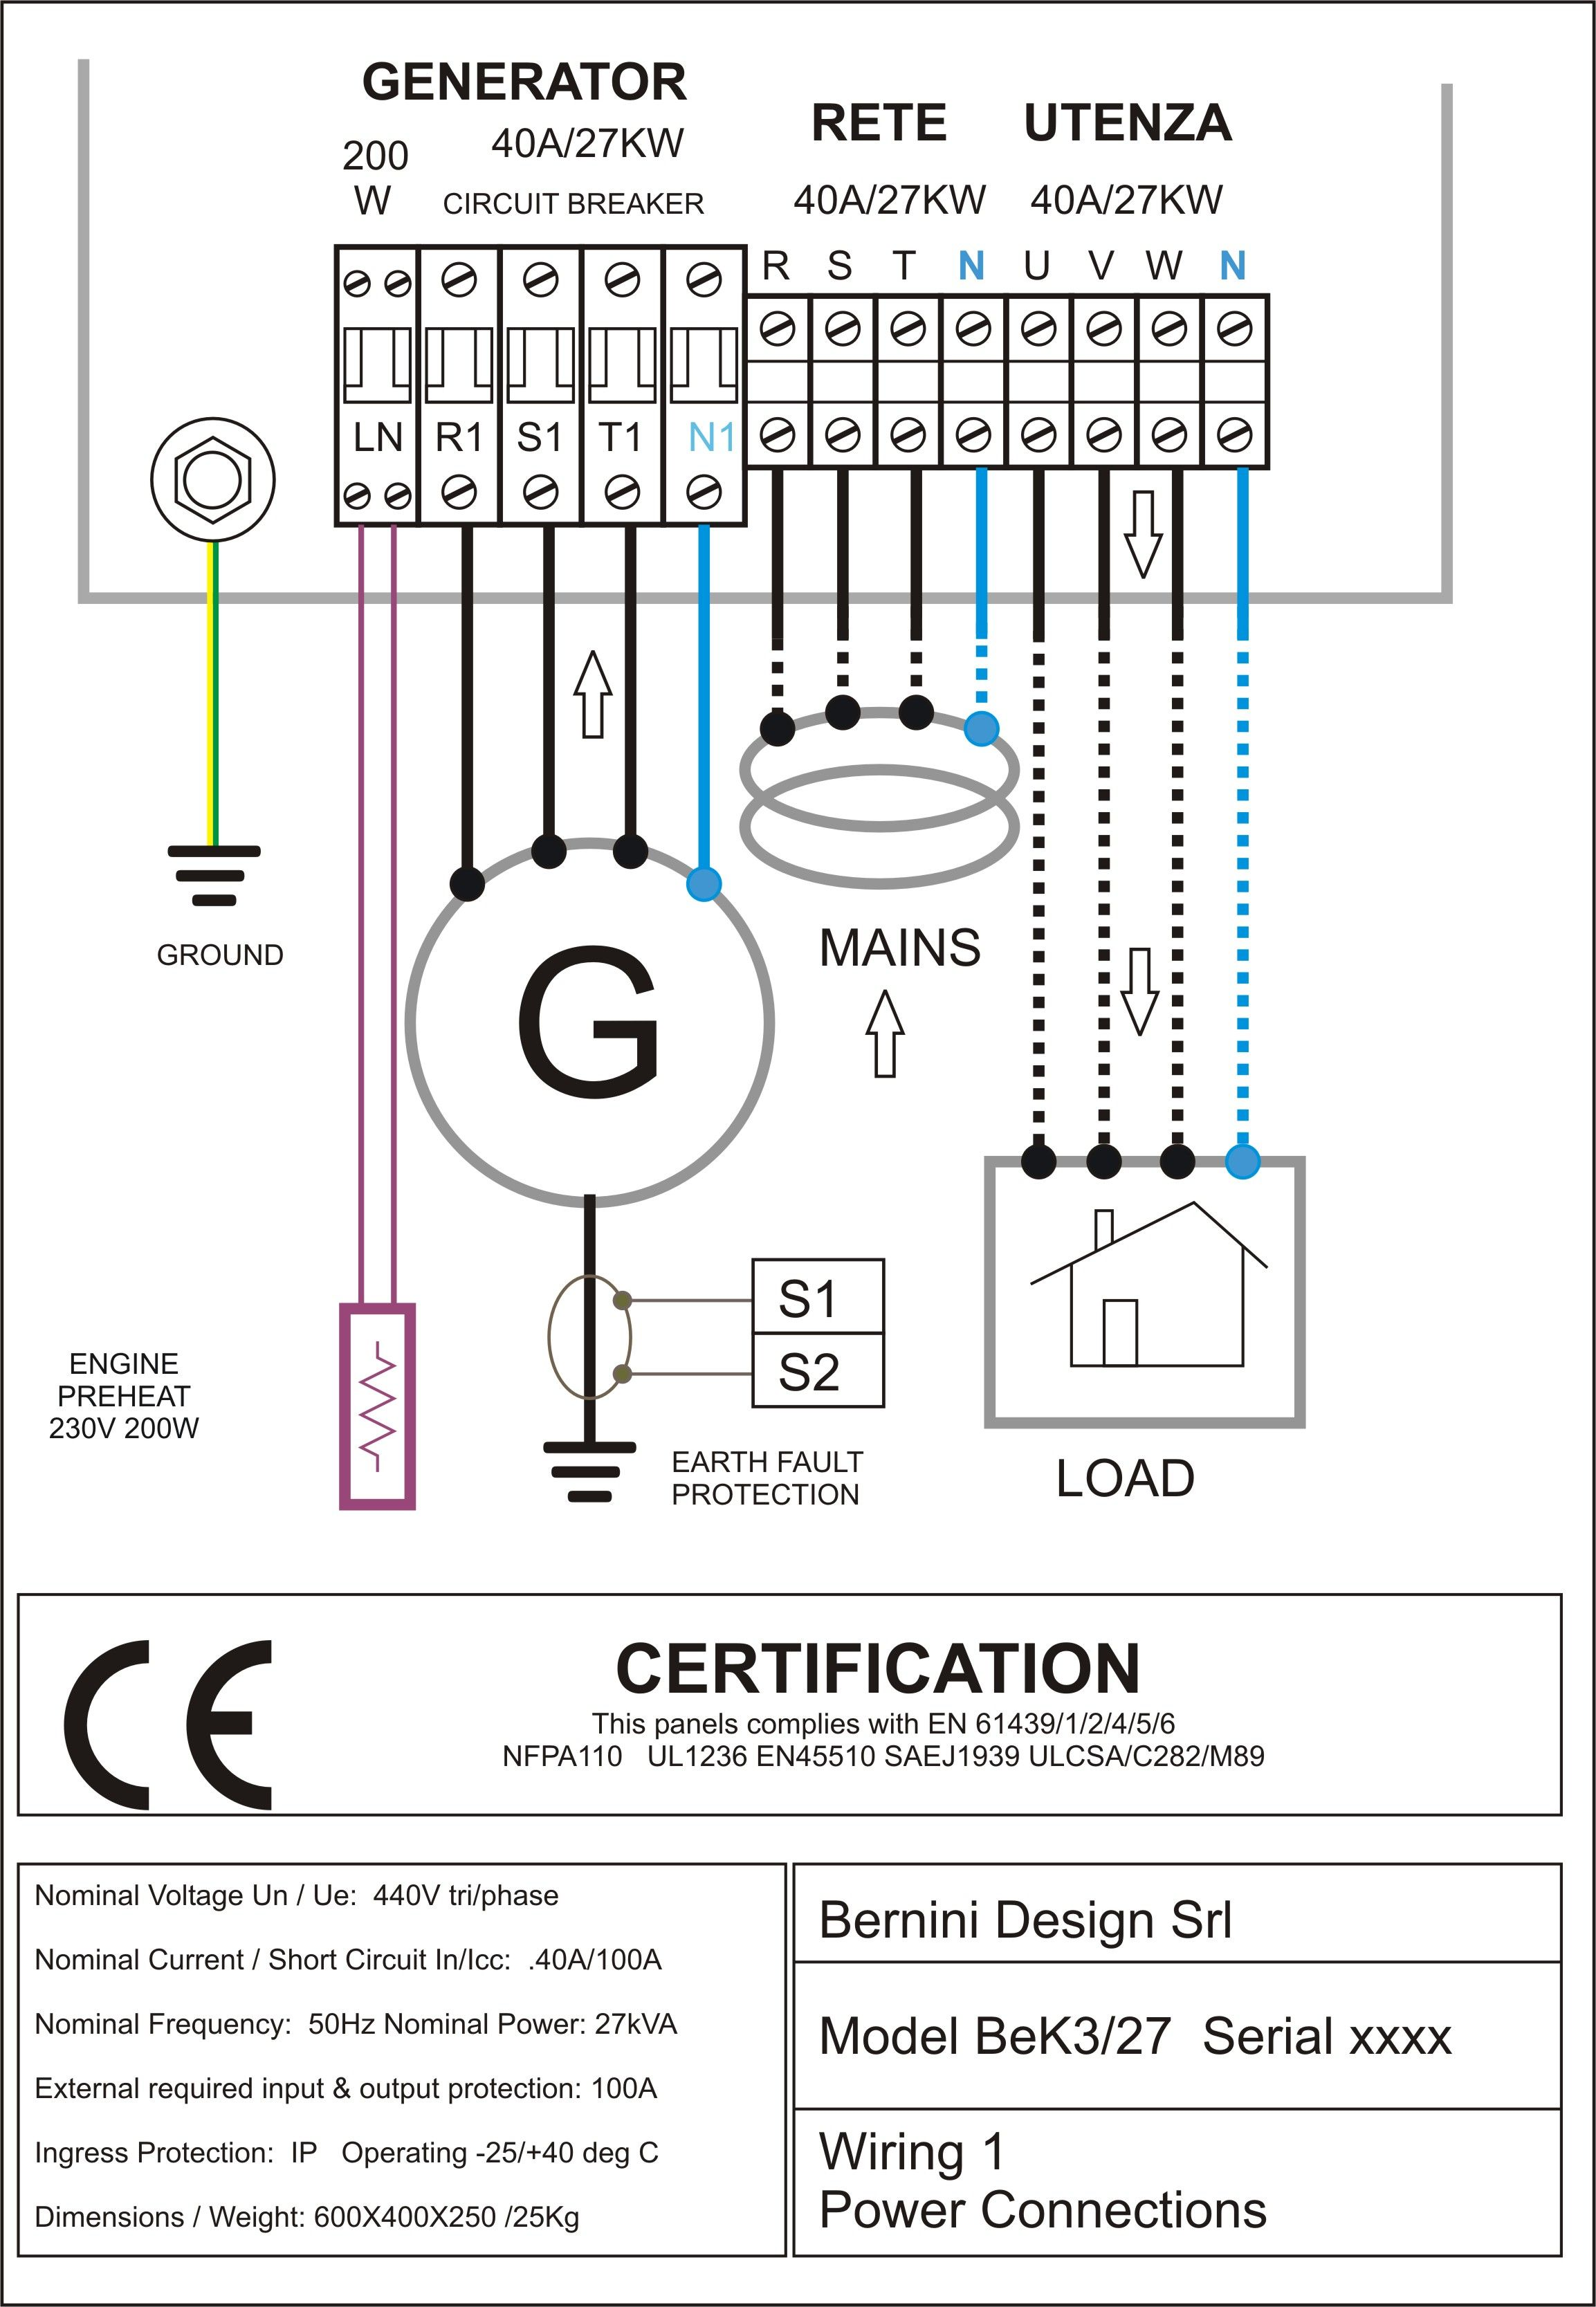 Desiel Generator Wiring Diagram - Wiring Diagrams Lose on how does a microwave work diagram, generator oil diagram, generator building diagram, generator plug diagram, generator connection diagram, generator schematic diagram, home generator diagram, circuit diagram, generator radiator diagram, generator exciter diagram, generator hook up diagram, rv trailer wire diagram, automotive generator diagram, generator wiring connectors, generator relay diagram, dc armature winding diagram, generator rotor diagram, generator fuel system diagram, generator solenoid diagram, electric generator diagram,